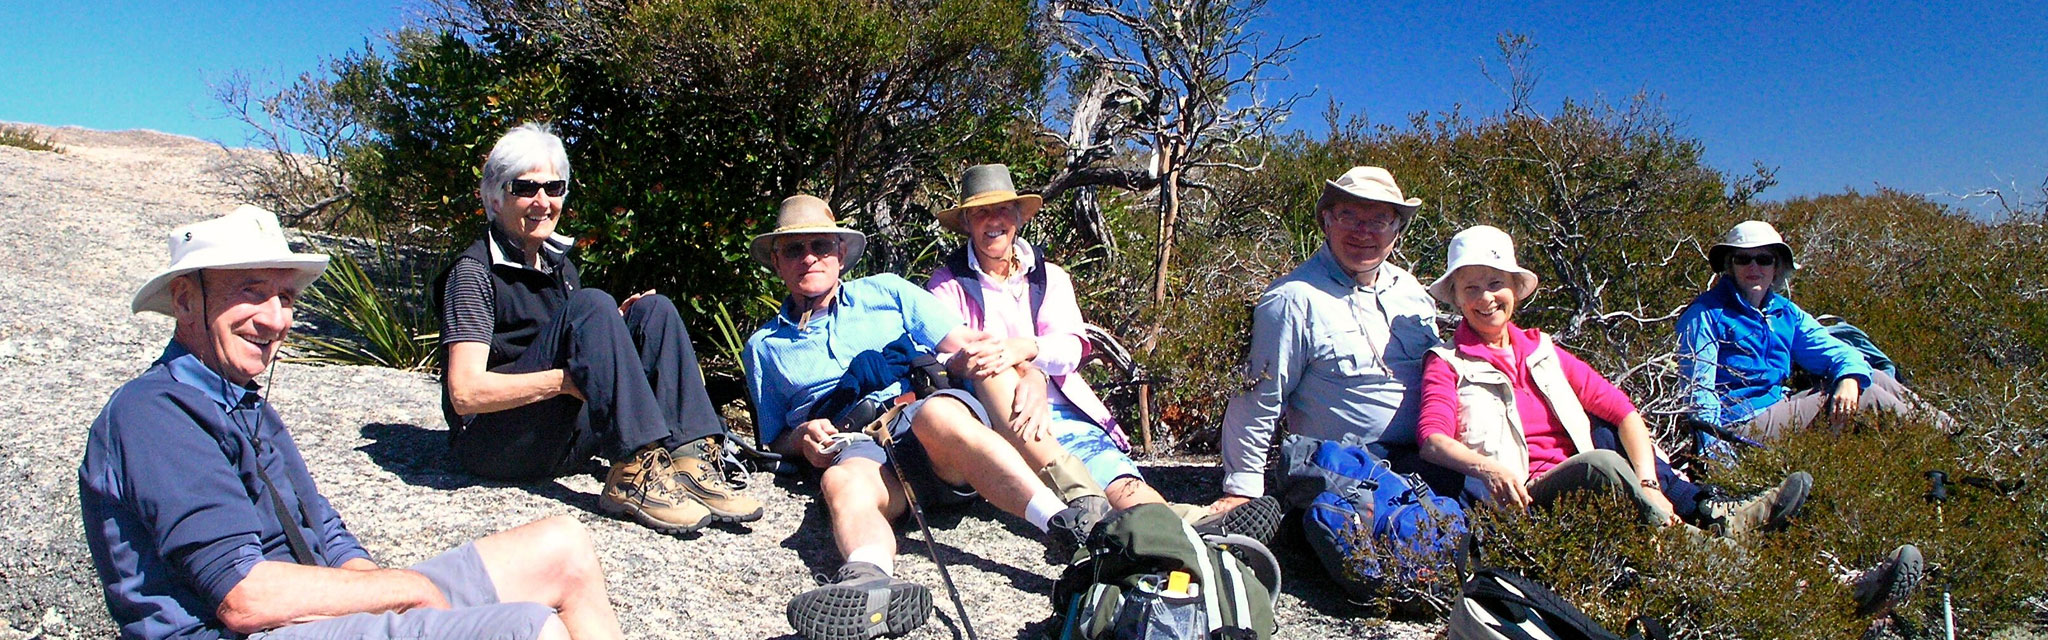 Tour Group relaxing on Bald Rock on Seniors Over 50s Holidays